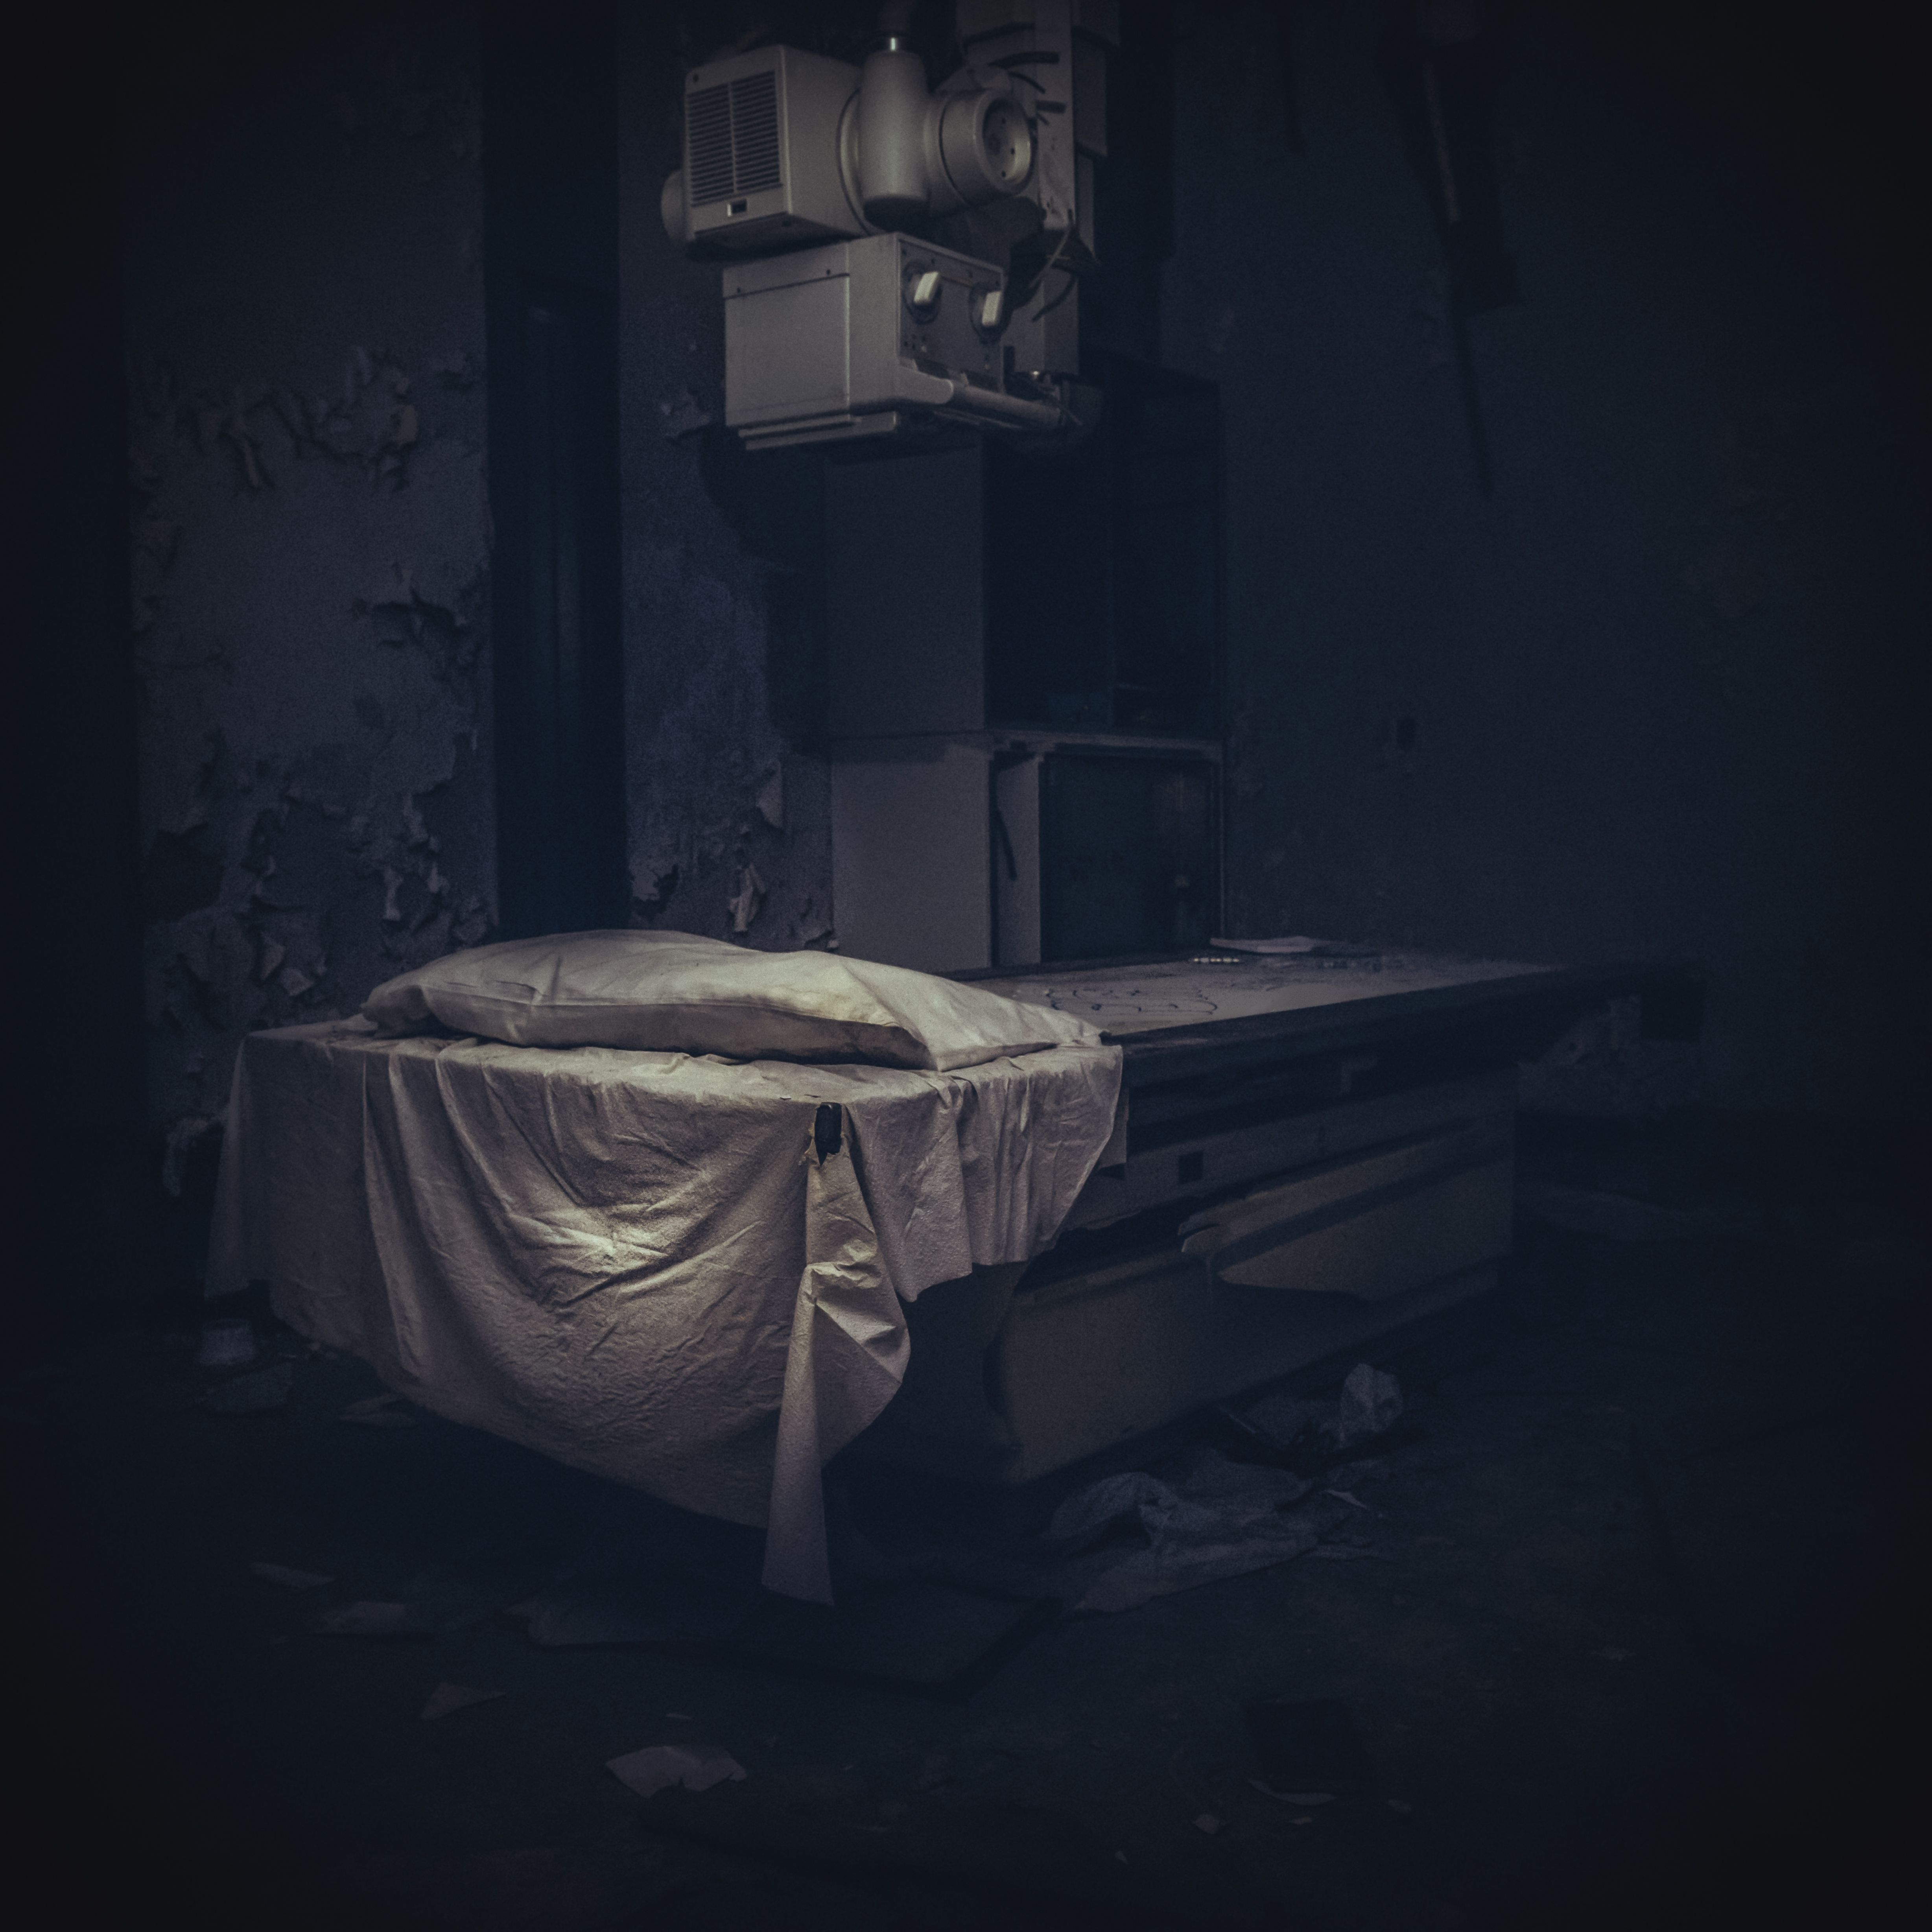 Most Haunted Places In The World With Stories: Inside The World's Most Haunted Hospitals